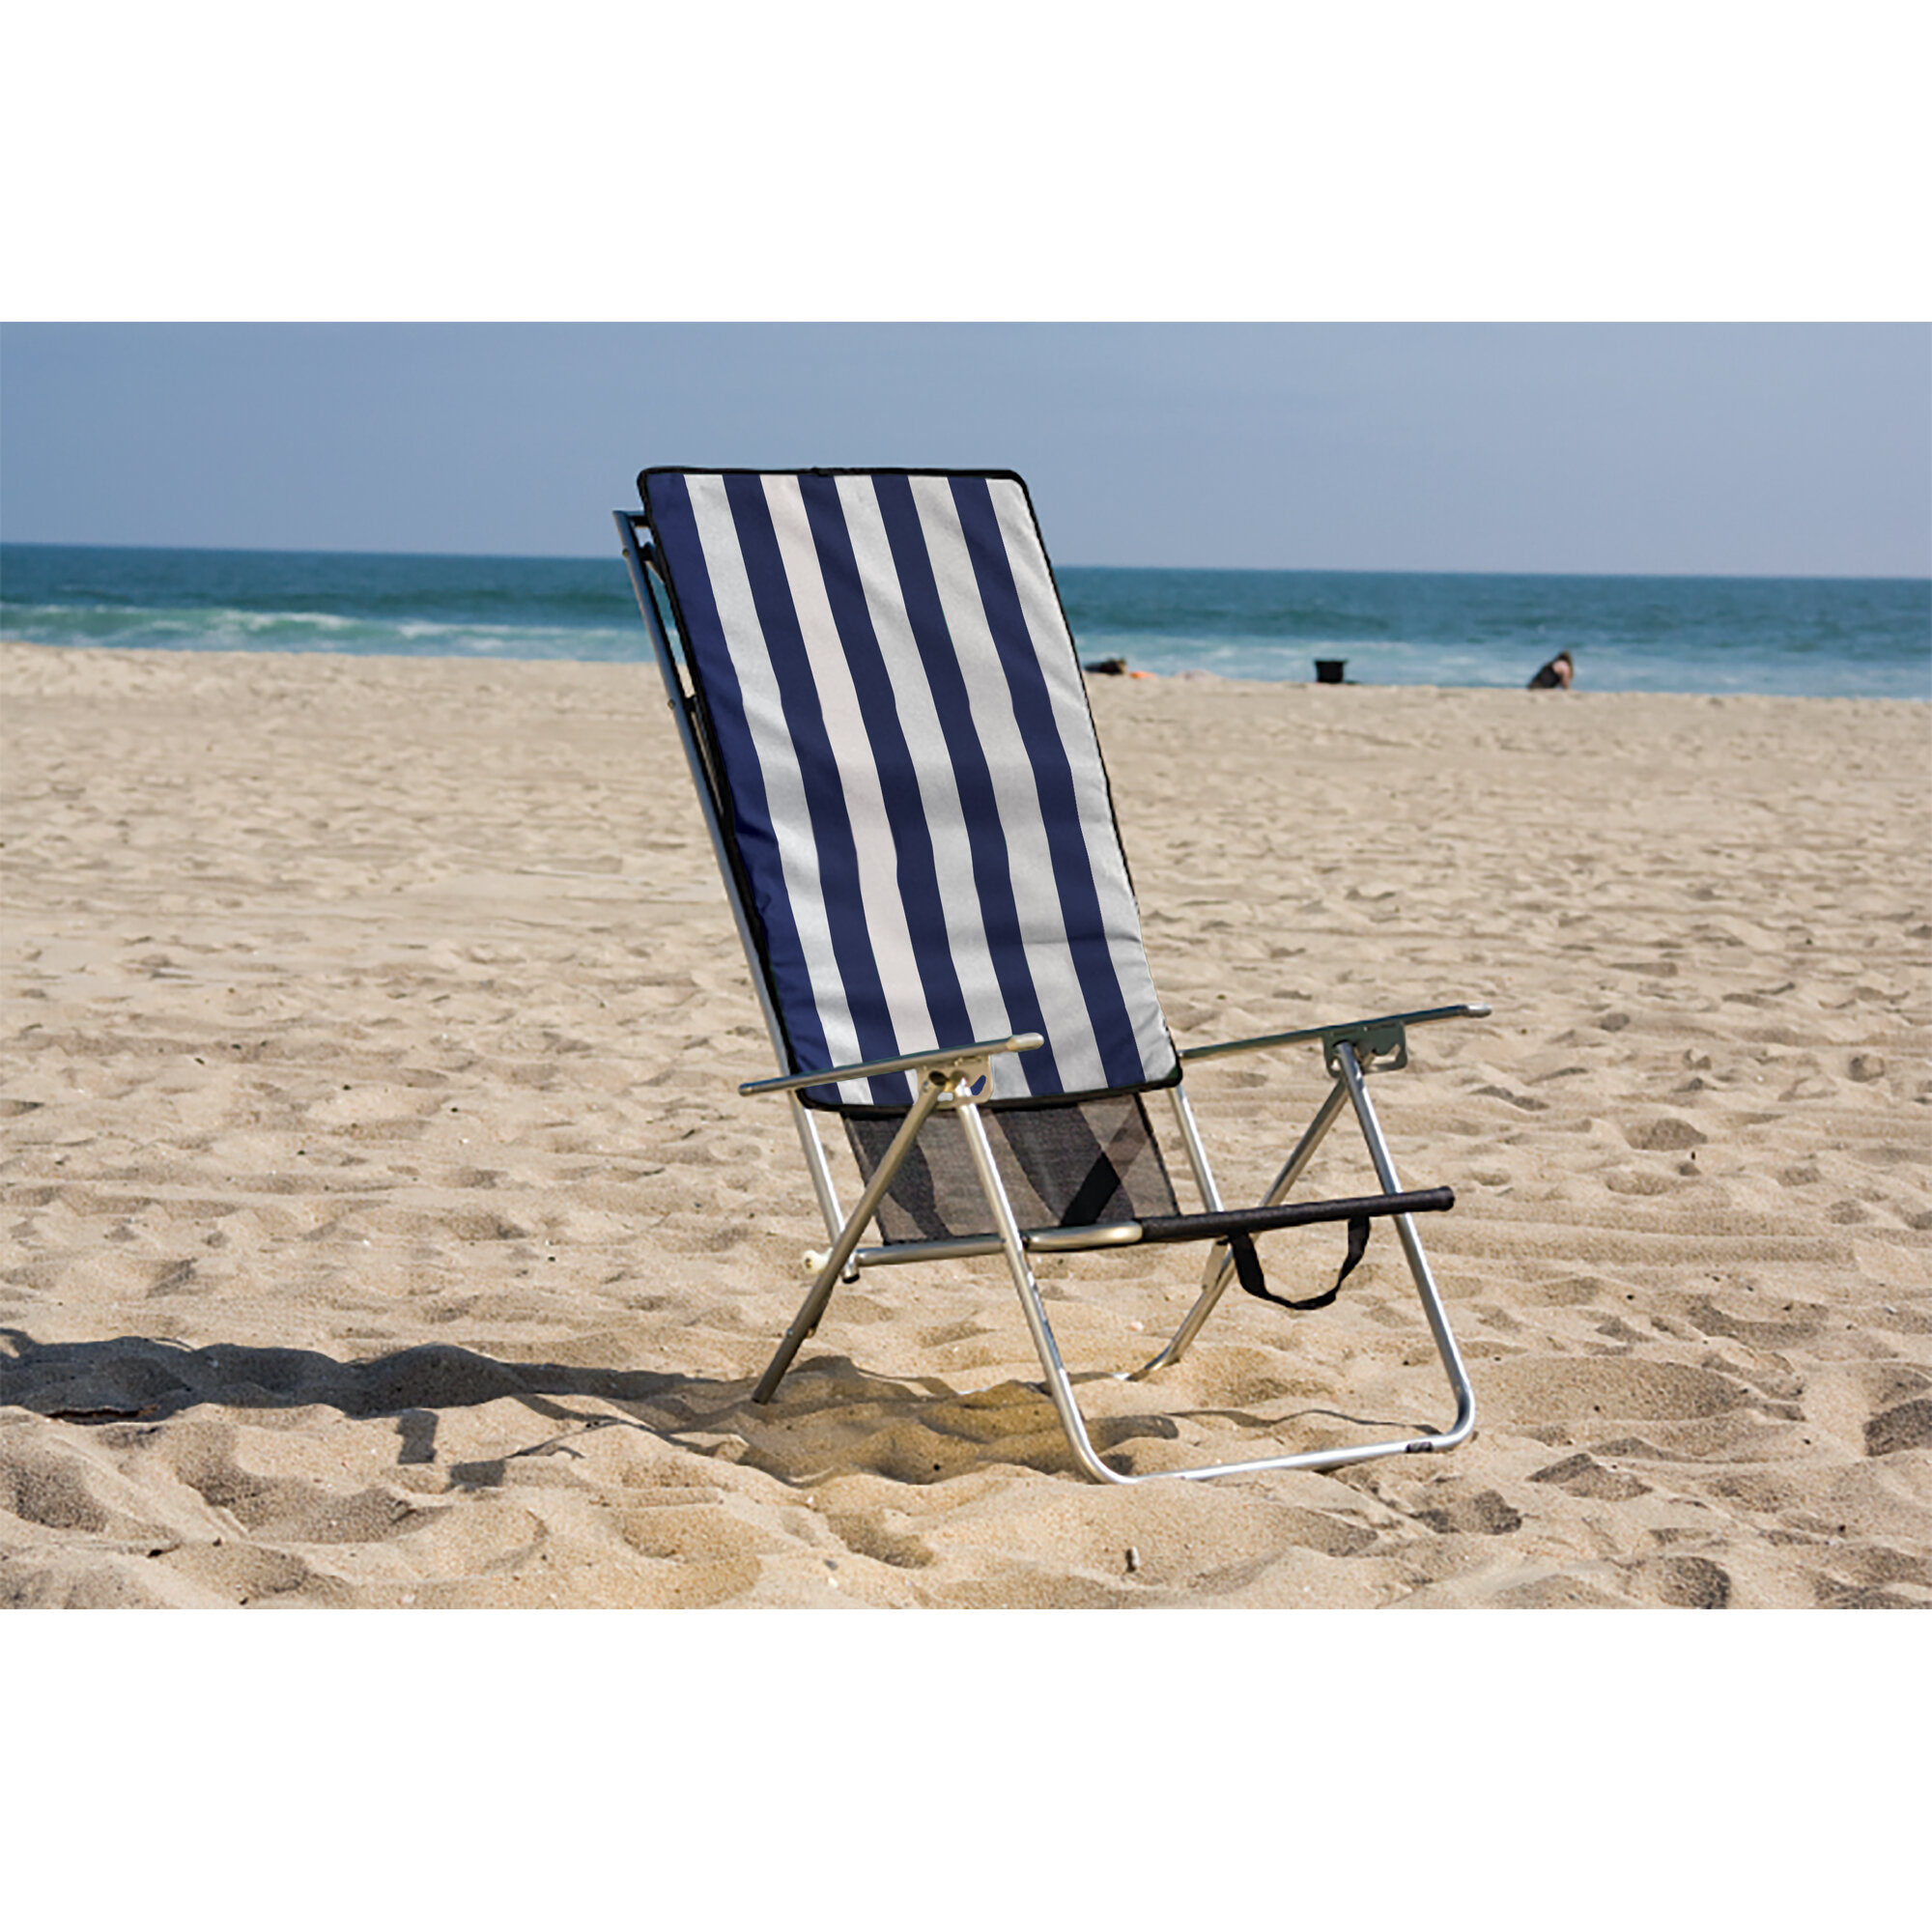 Shade Folding Beach Chair